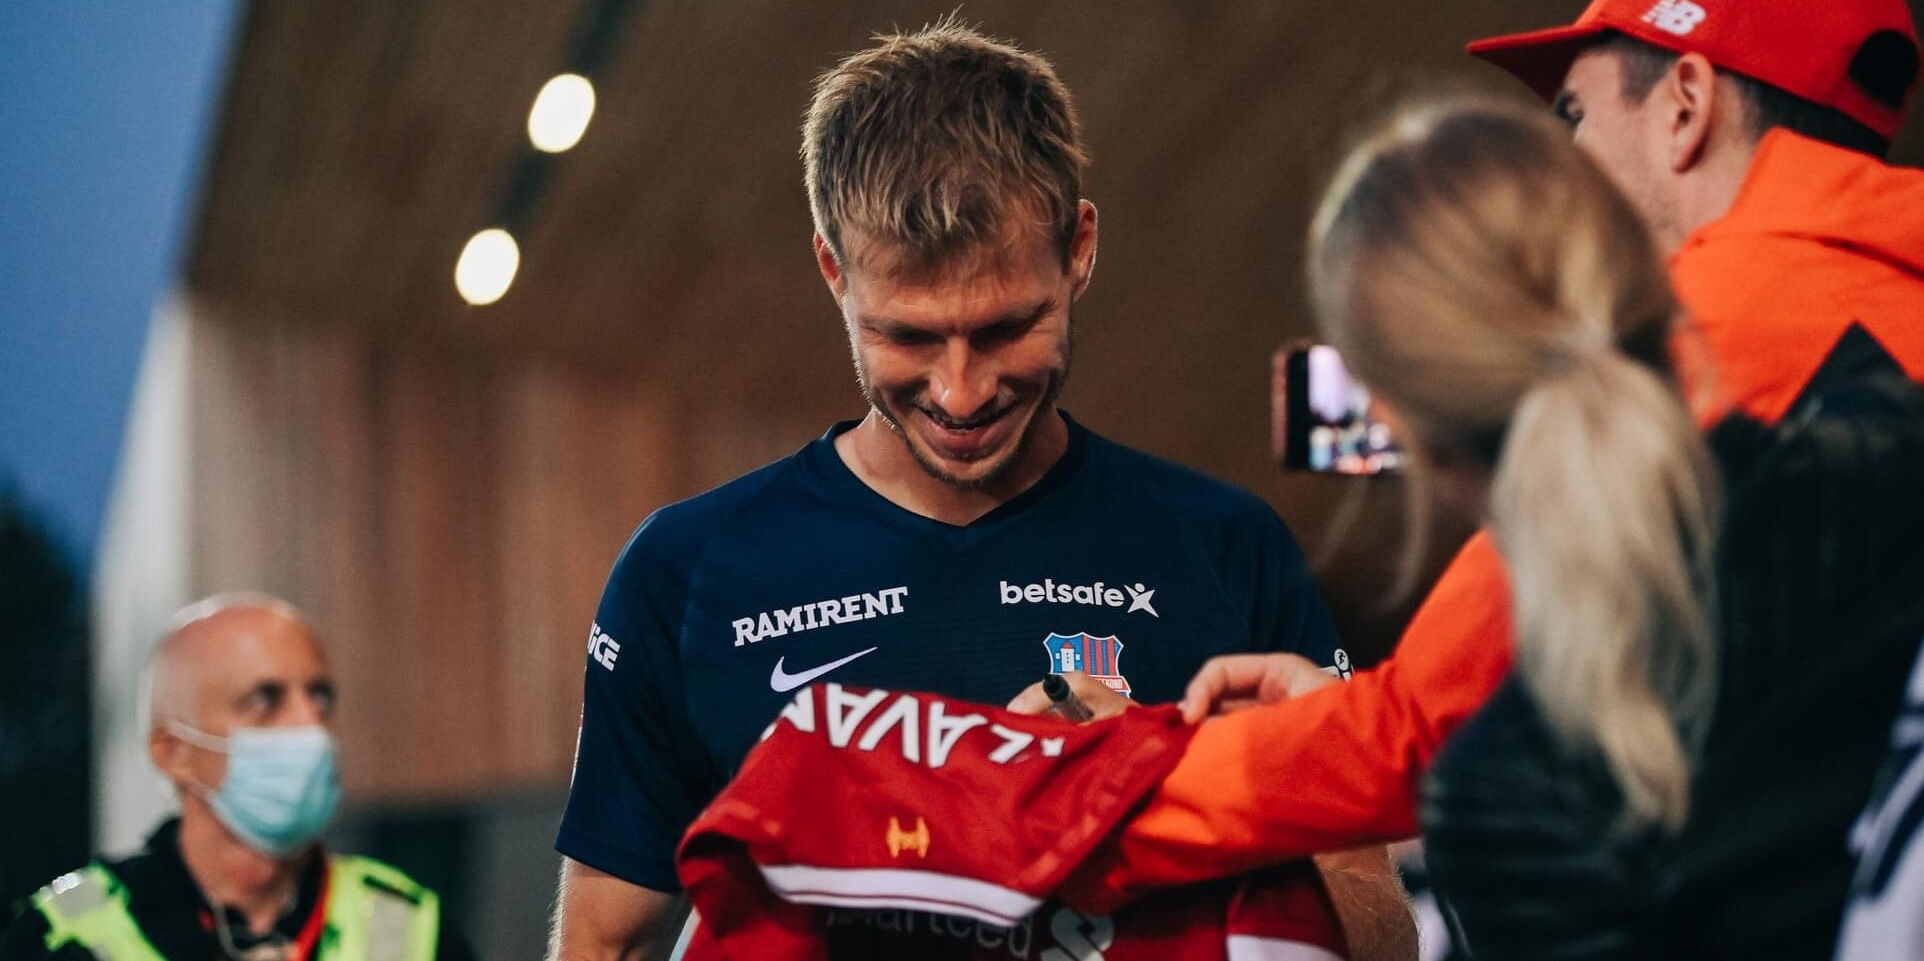 (Photo) Ex-Red's reaction to being asked to sign a Liverpool shirt is heartwarming